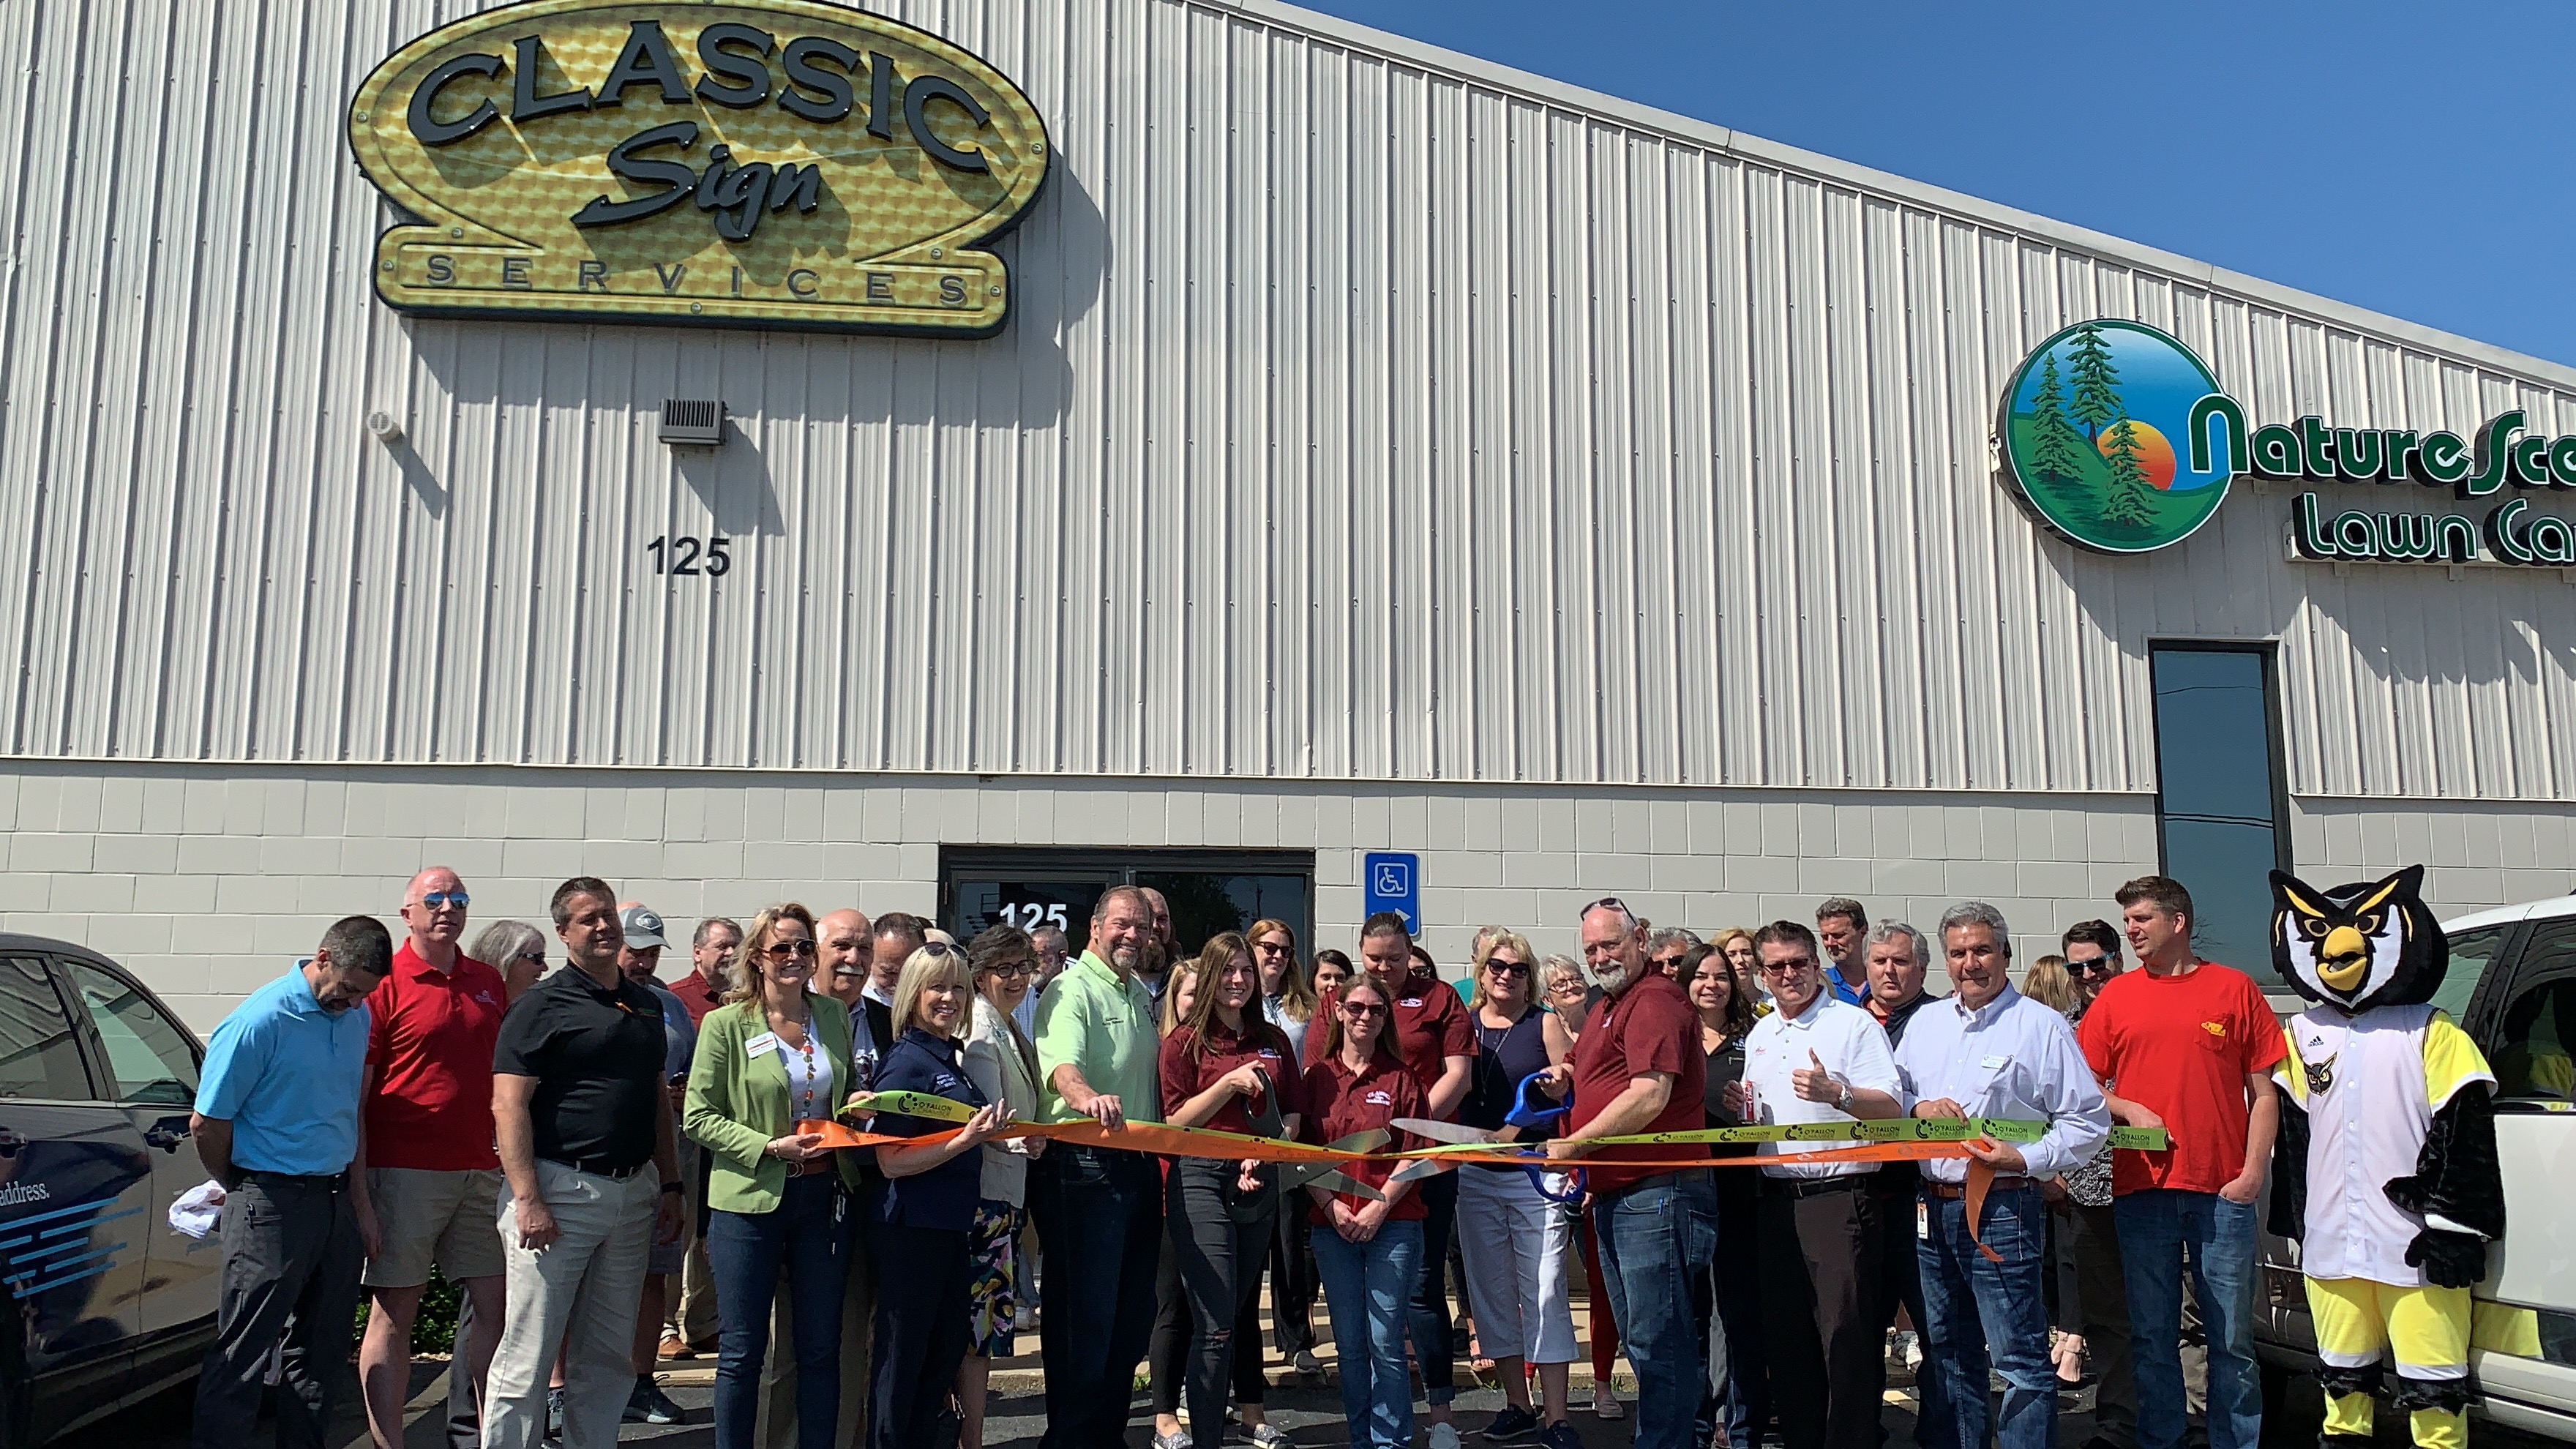 Image for Classic Sign Services Celebrates 20th Anniversary with Ribbon Cutting